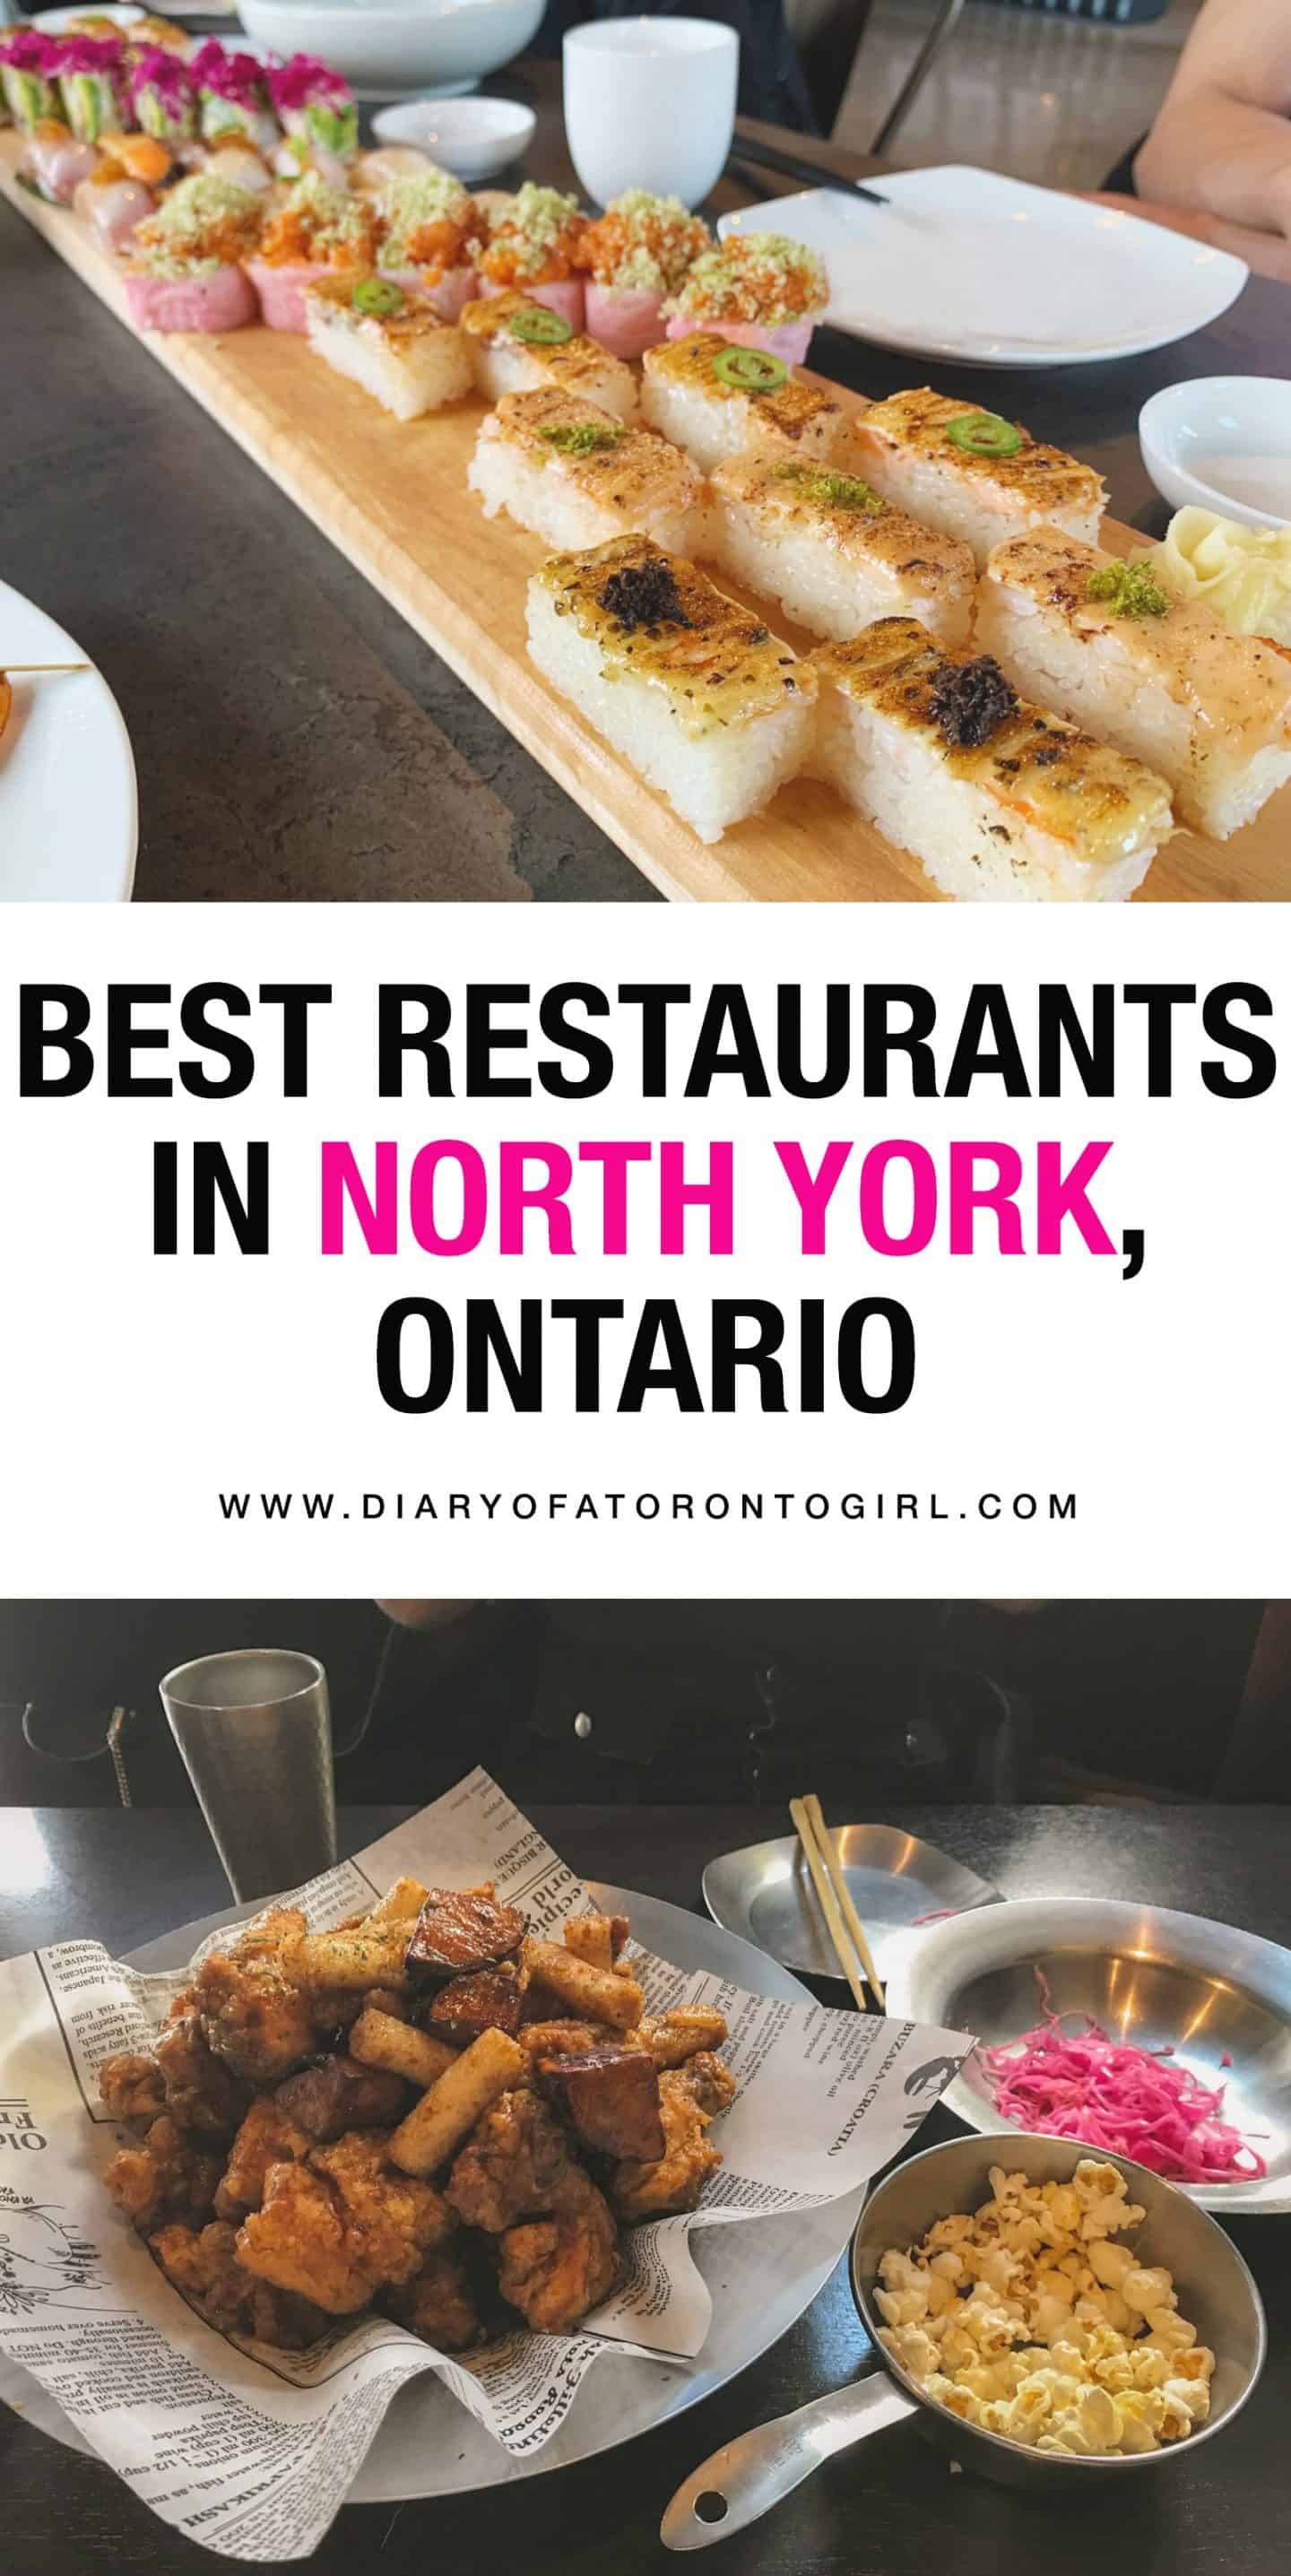 Looking for the top food spots to check out in North York, just north of Toronto? Here are some of the best restaurants and places to eat in North York, Ontario!